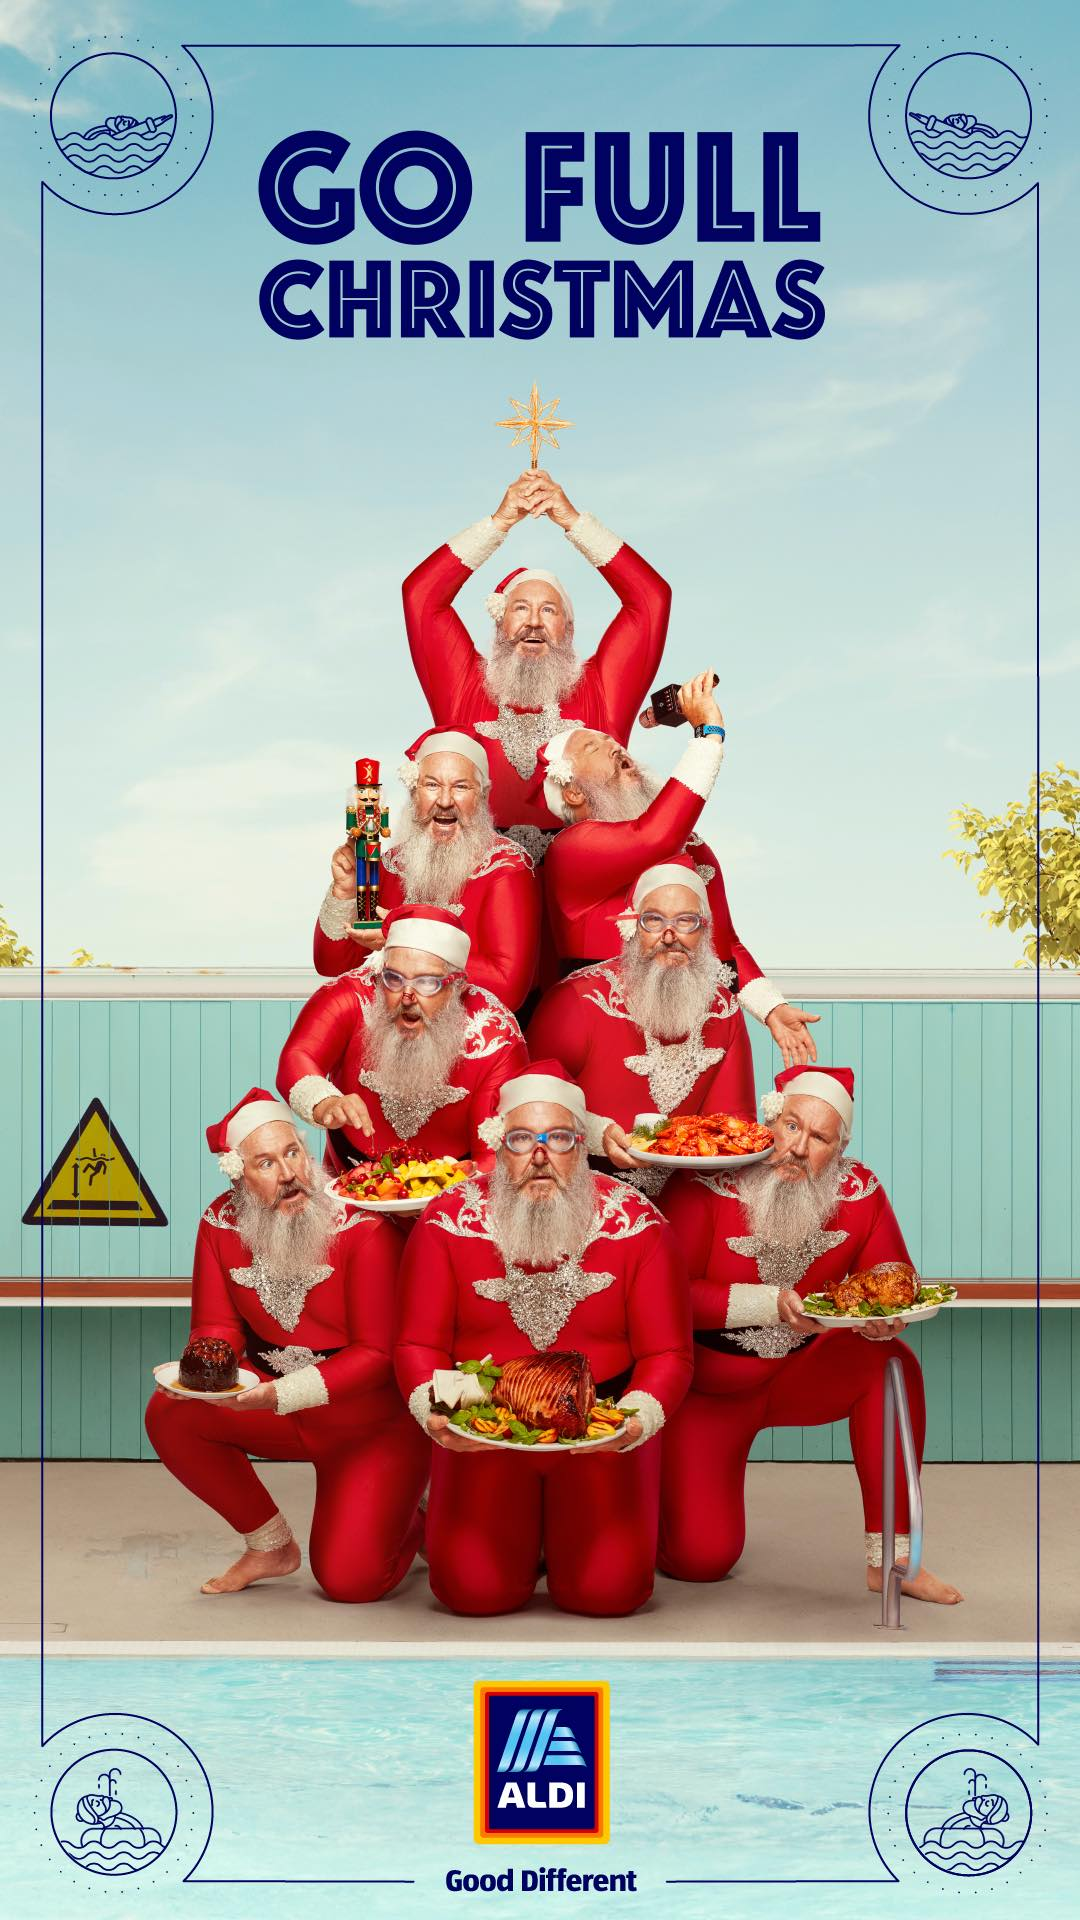 Santa dons a leotard and goes Full Christmas in ALDI's 2020 Christmas campaign via BMF